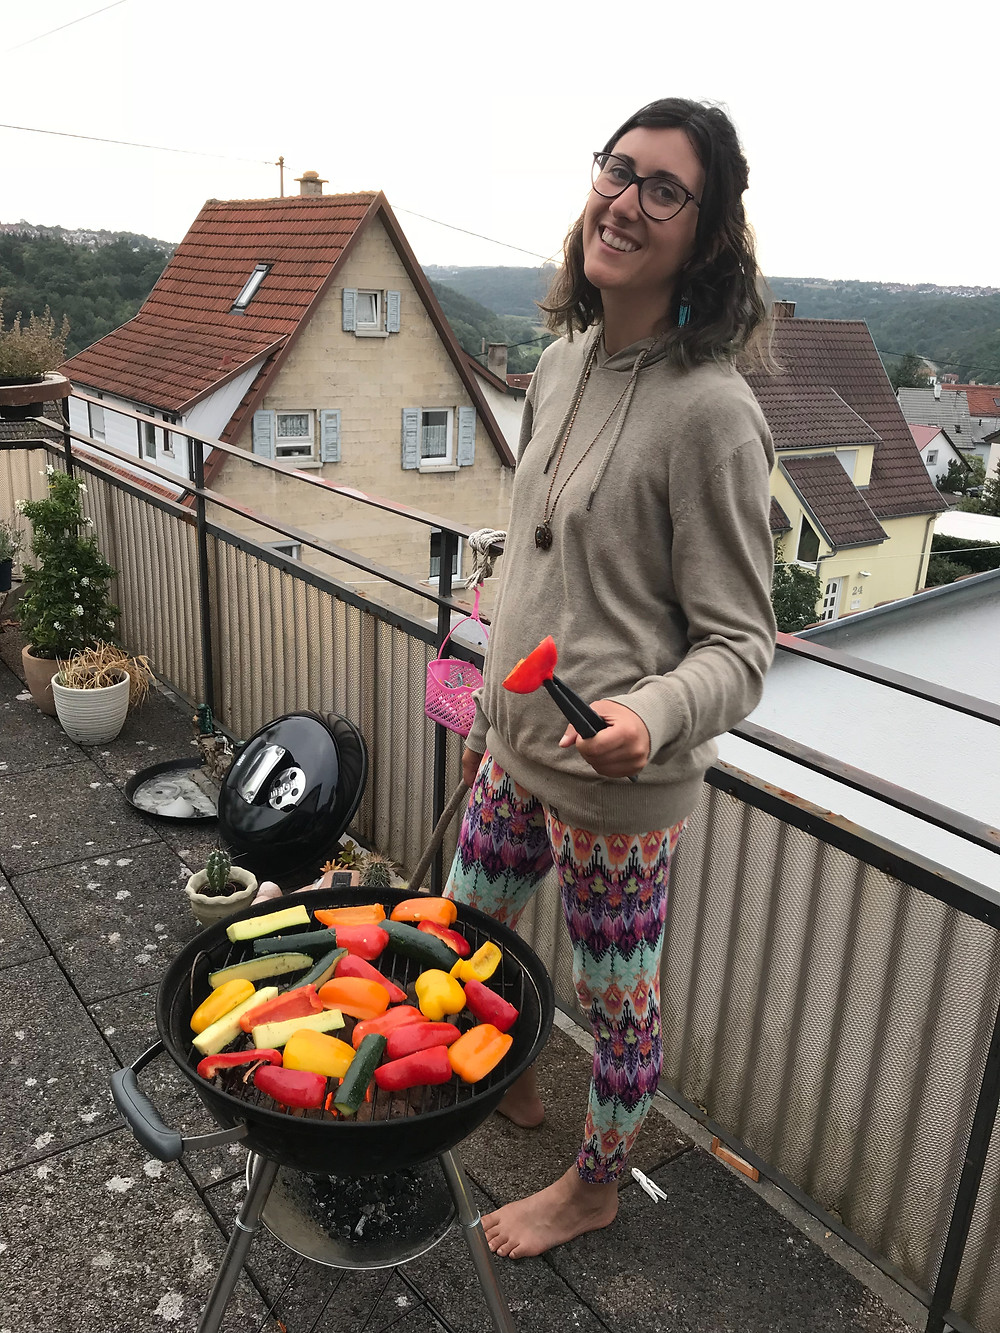 Vegetable Barbecue on a terrace in Germany.